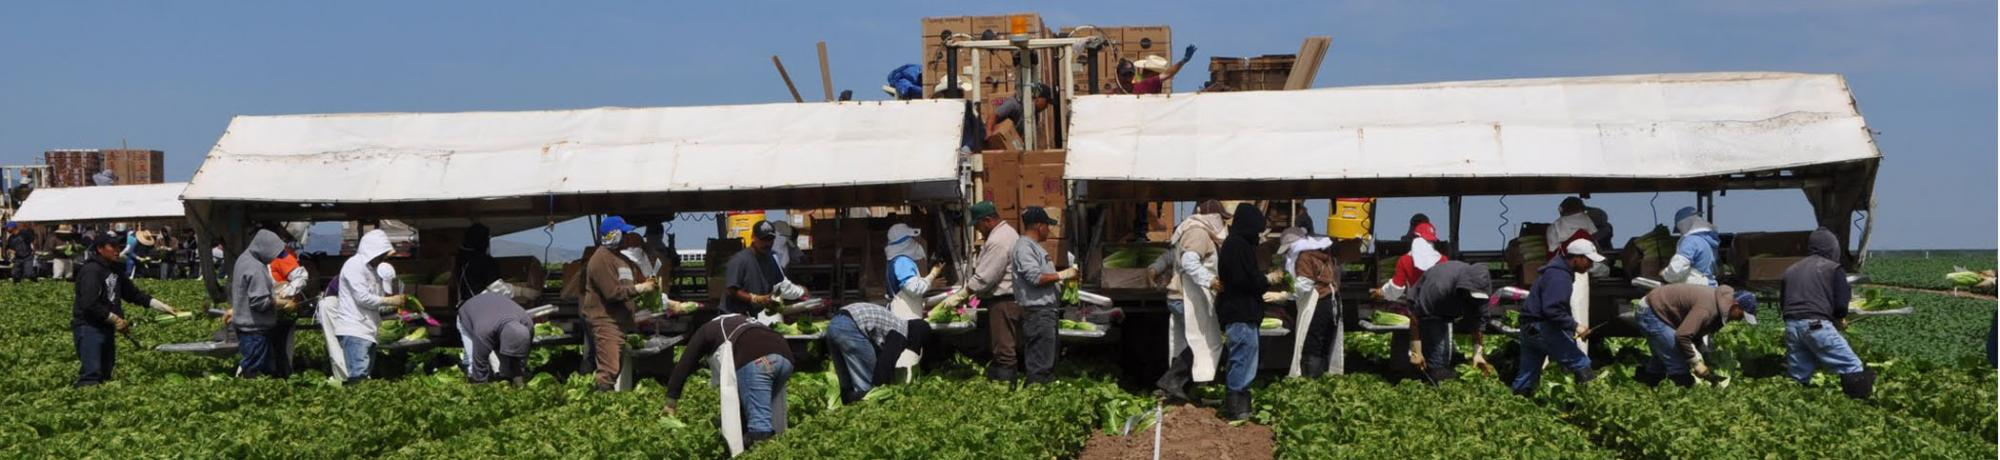 Farmworkers harvesting lettuce in the field and packing into boxes for transport